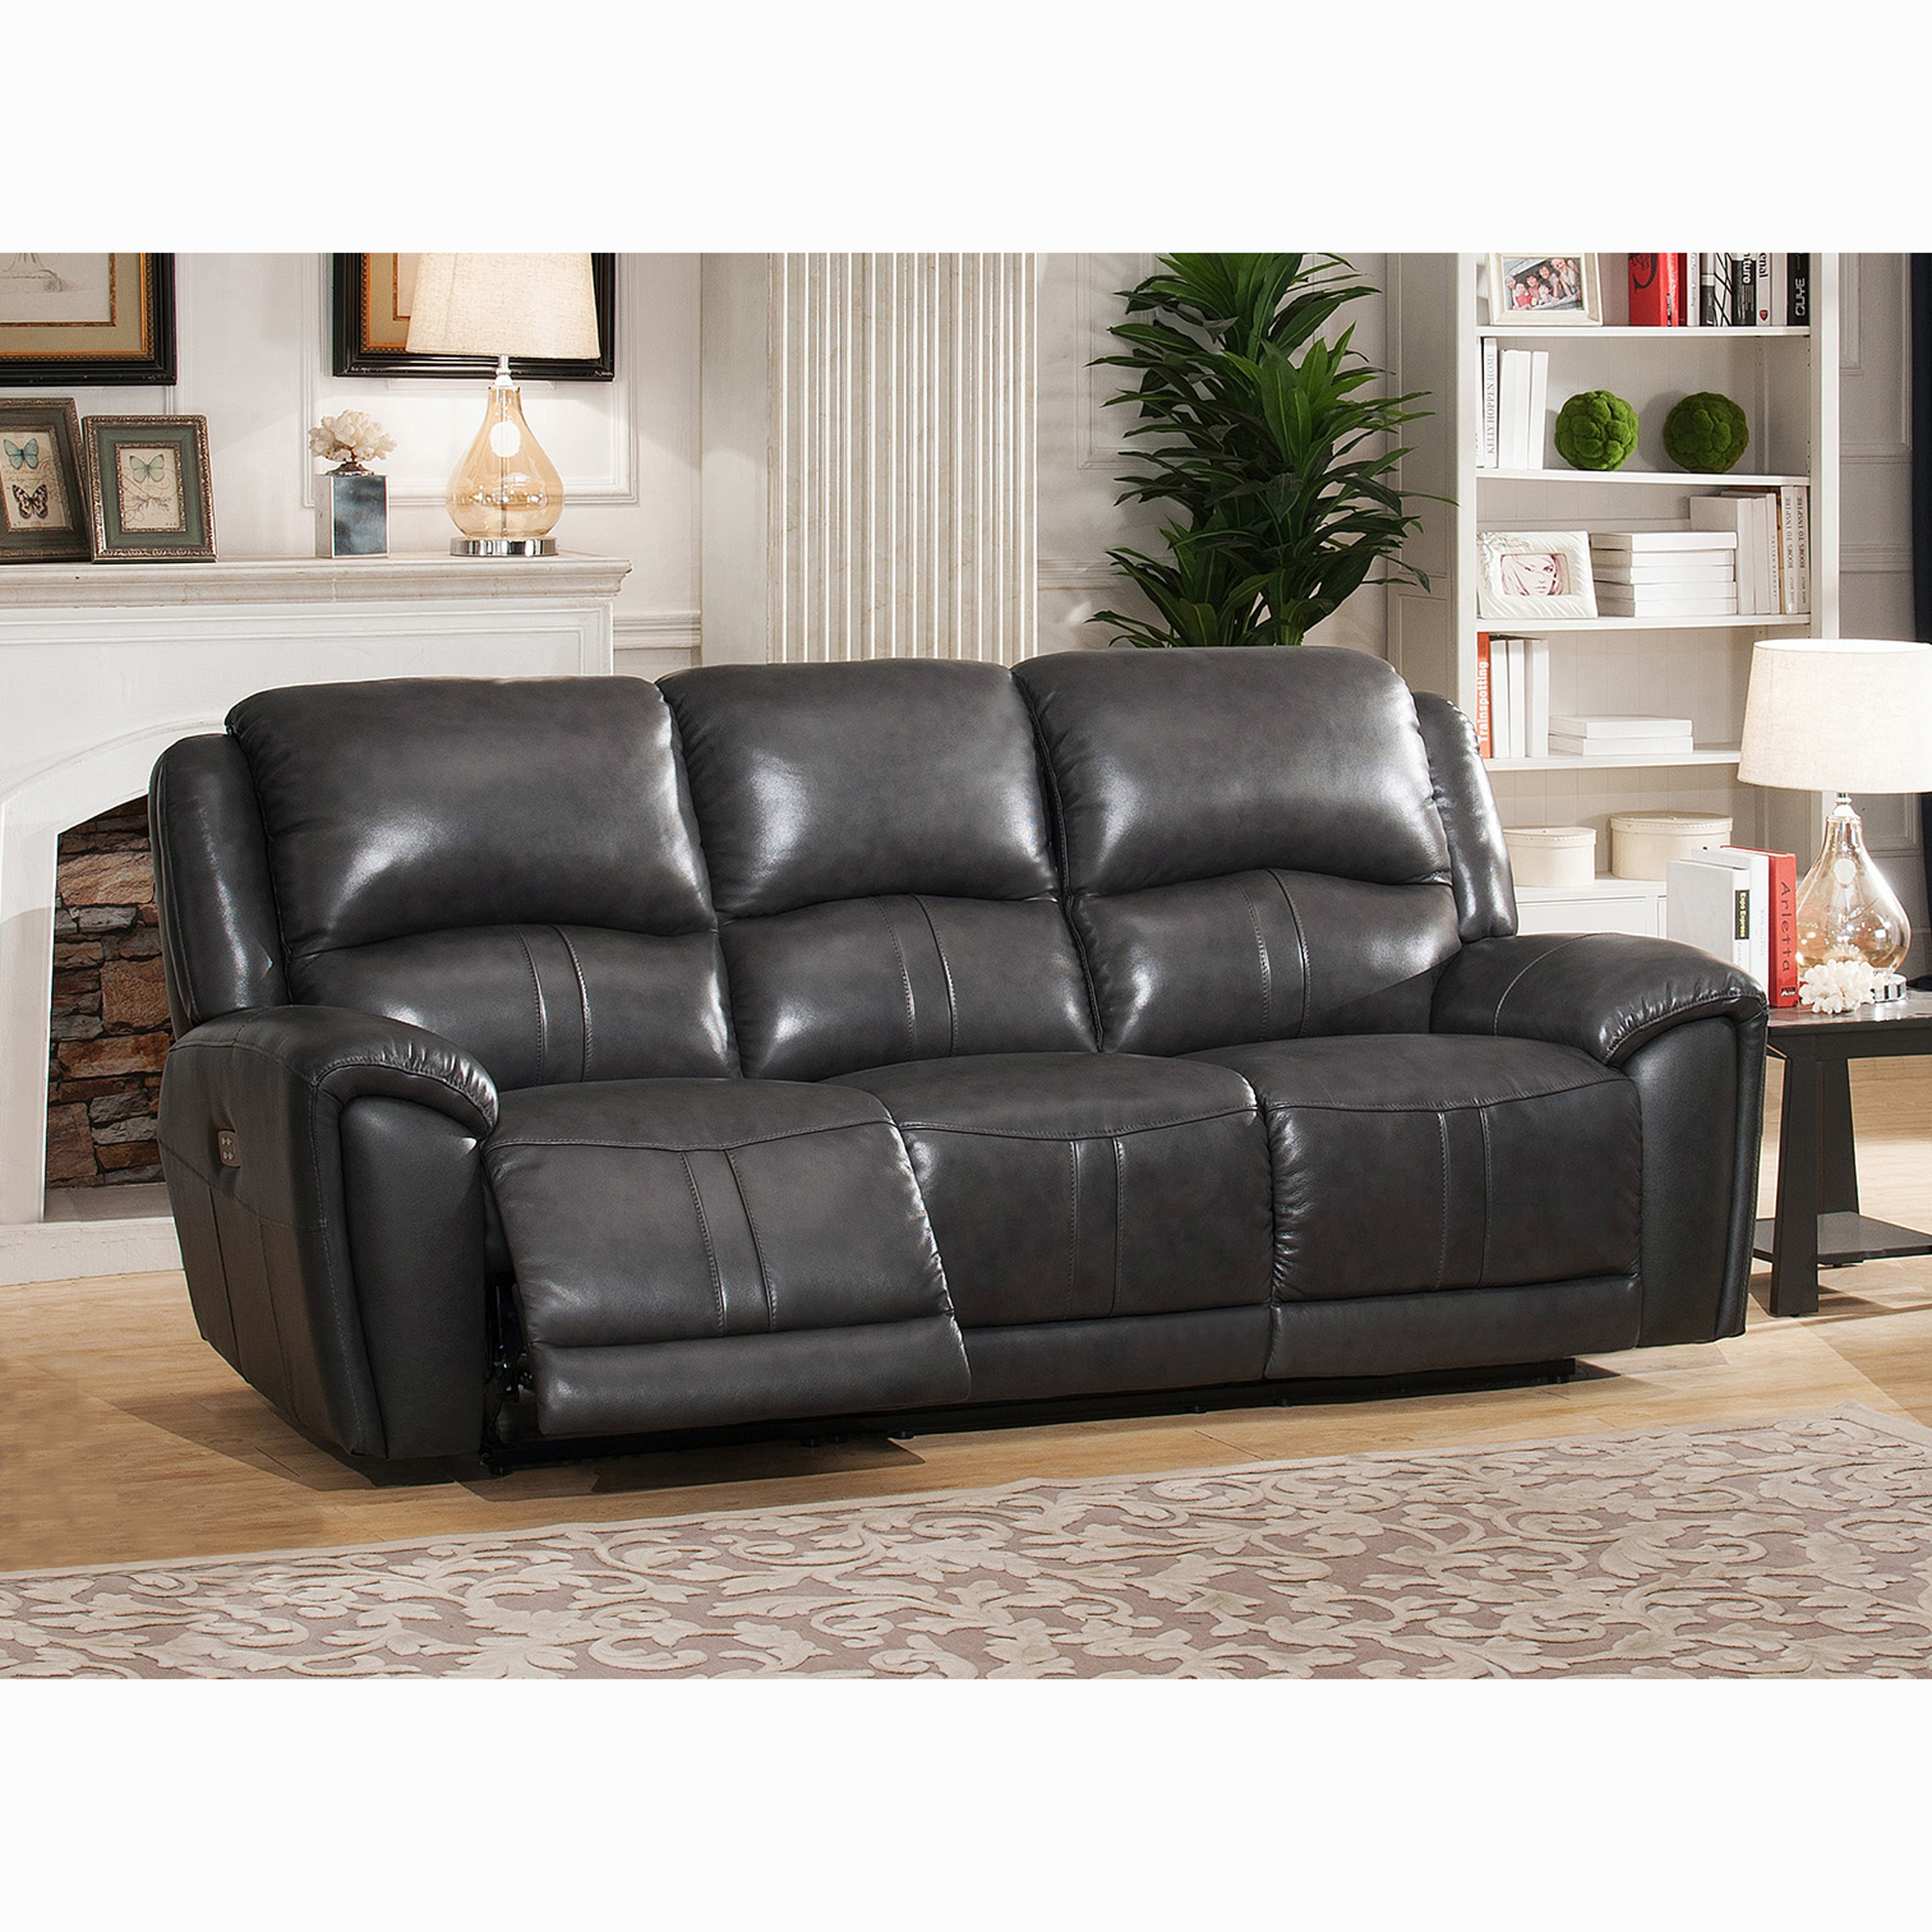 Shop Ari Grey Top Grain Leather Power Reclining Sofa And Loveseat   On Sale    Free Shipping Today   Overstock.com   18755295